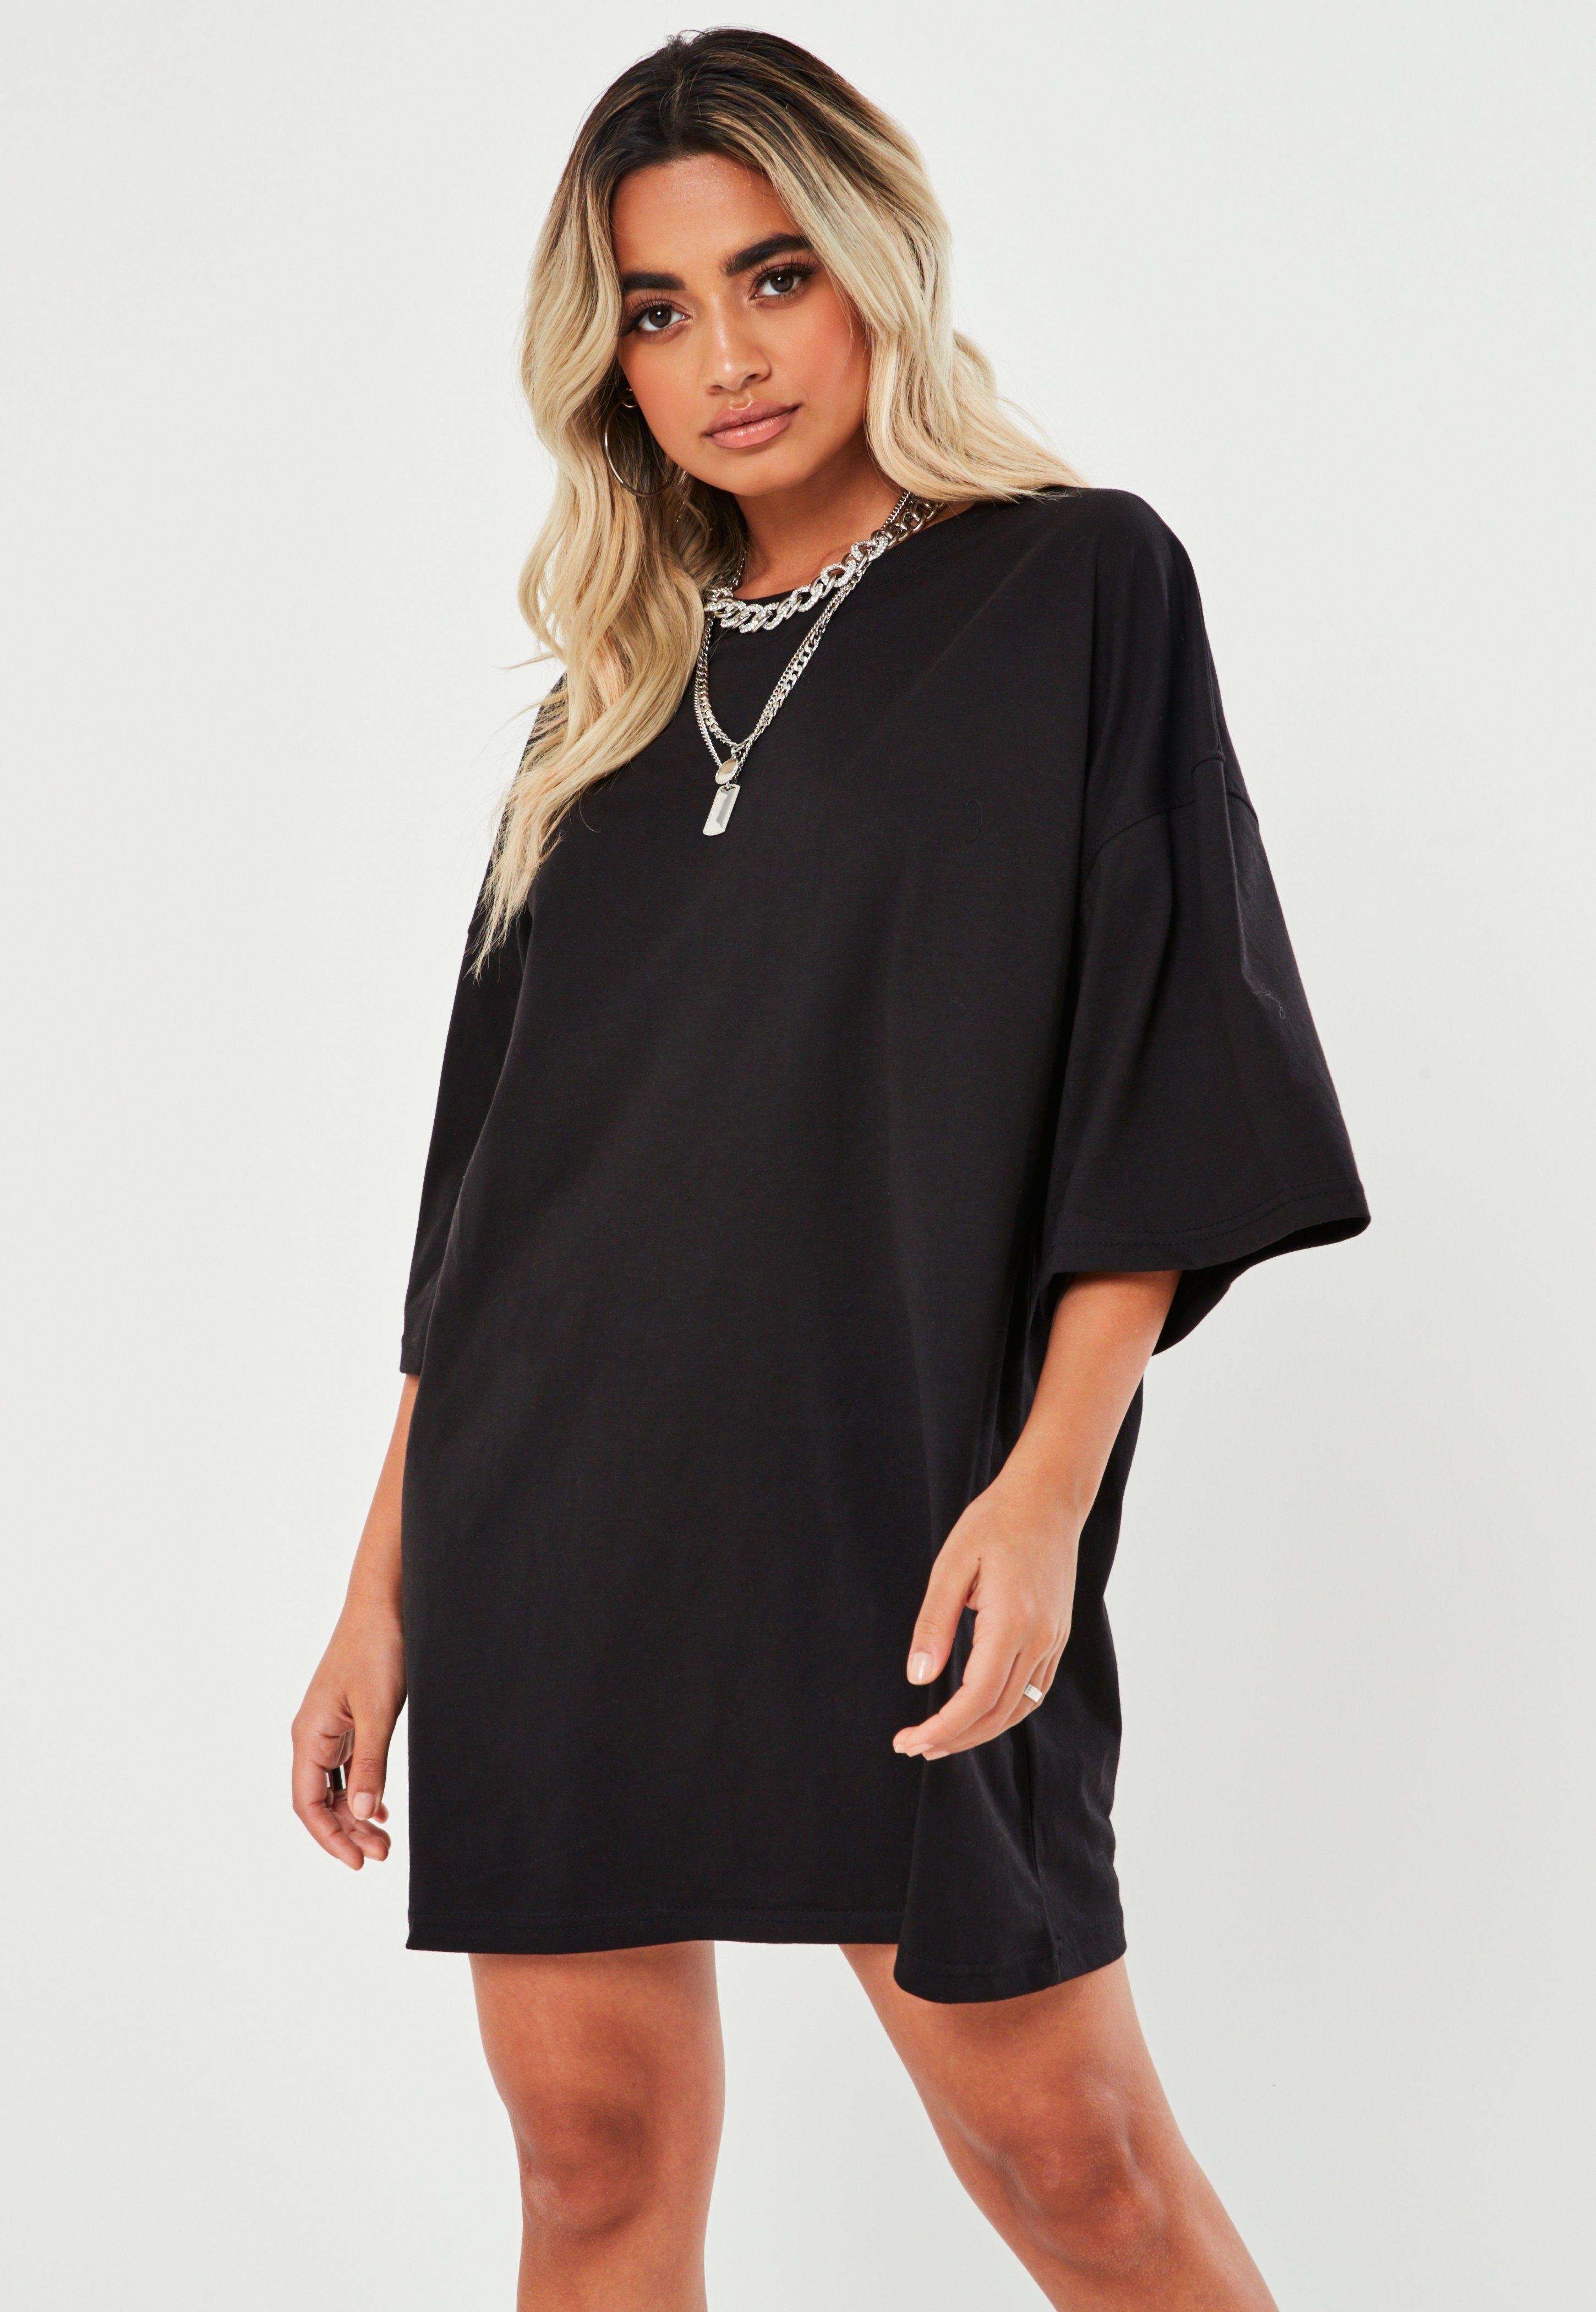 6c79a3602182 T Shirt Dresses | Printed & Slogan T-Shirt Dresses - Missguided